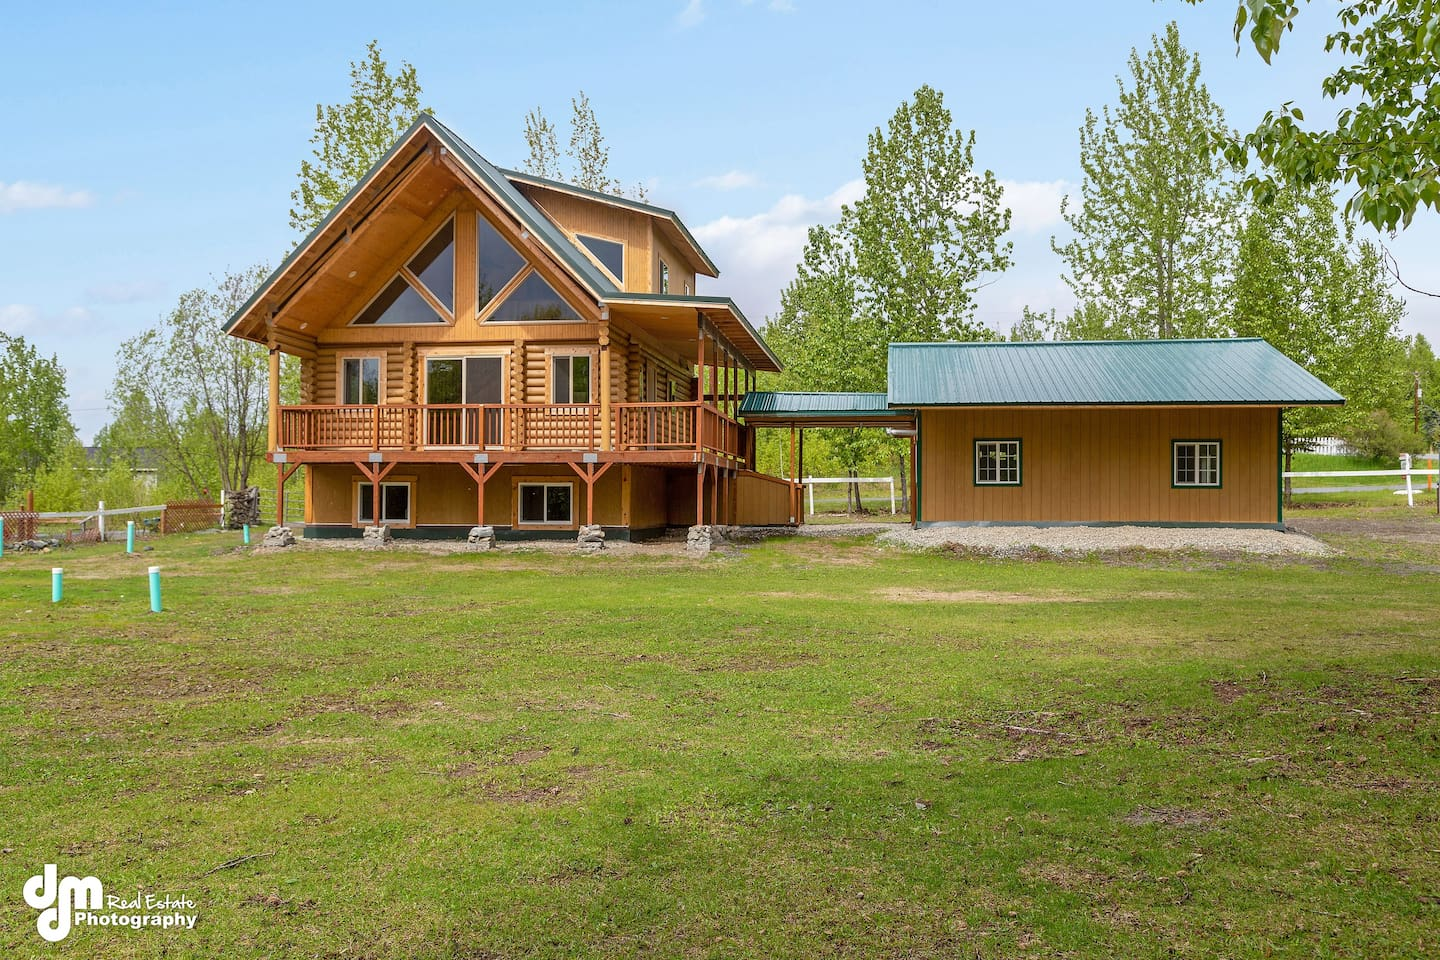 Rustic new log home on one acre in quiet neighborhood